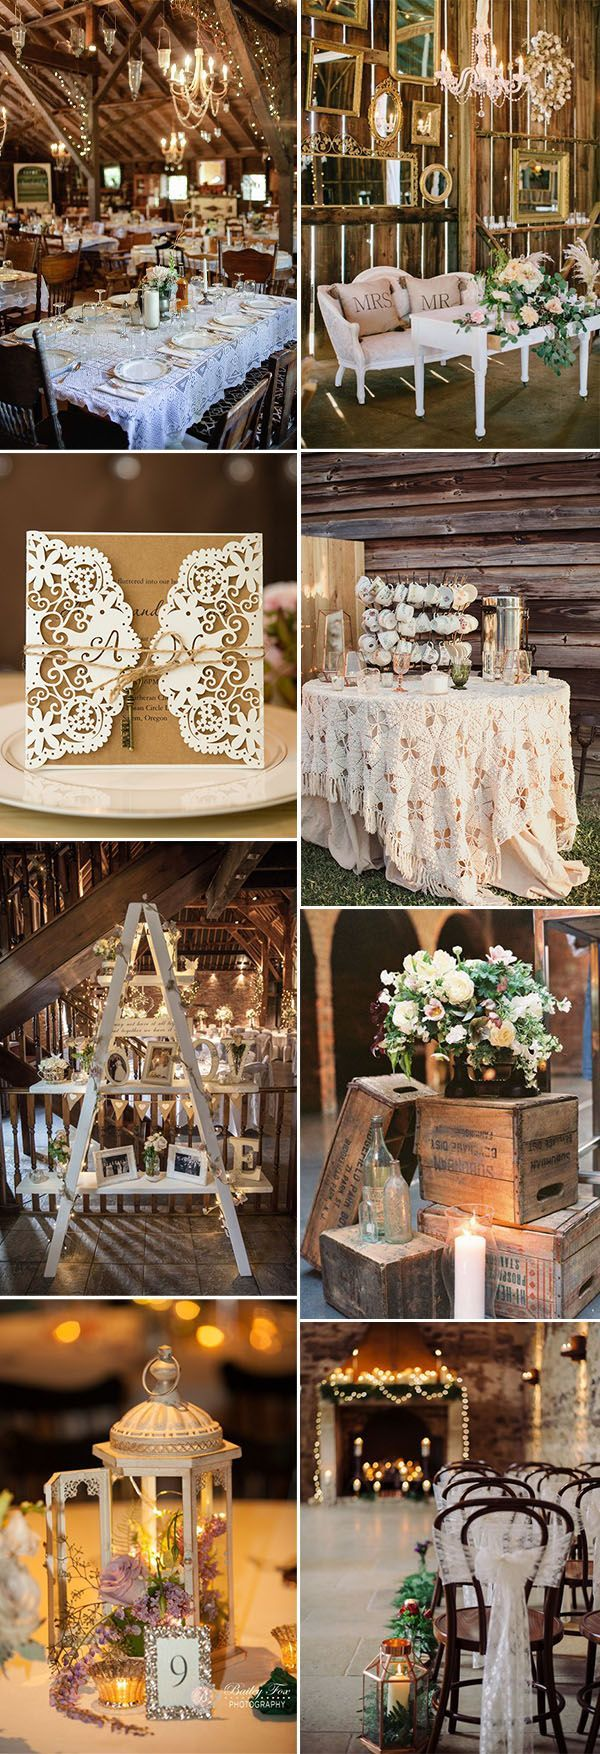 6 Awesome Vintage Wedding Theme Ideas to Inspire You | Wedding themes, Vintage  wedding theme, Wedding decorations